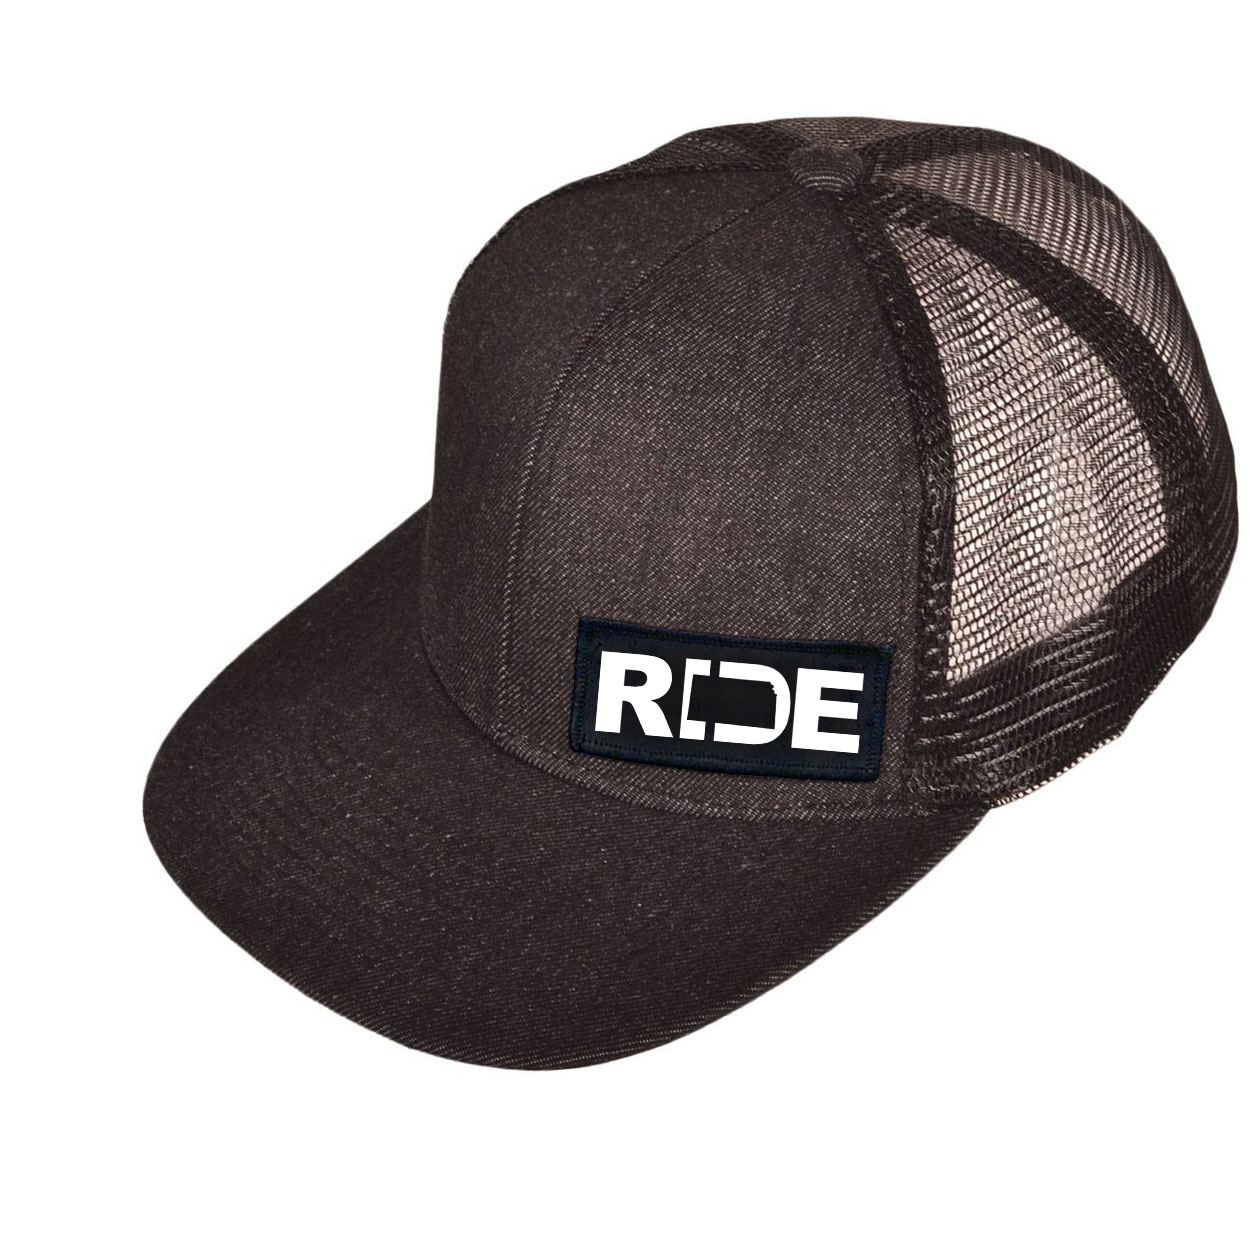 Ride Kansas Night Out Woven Patch Snapback Flat Brim Hat Black Denim (White Logo)